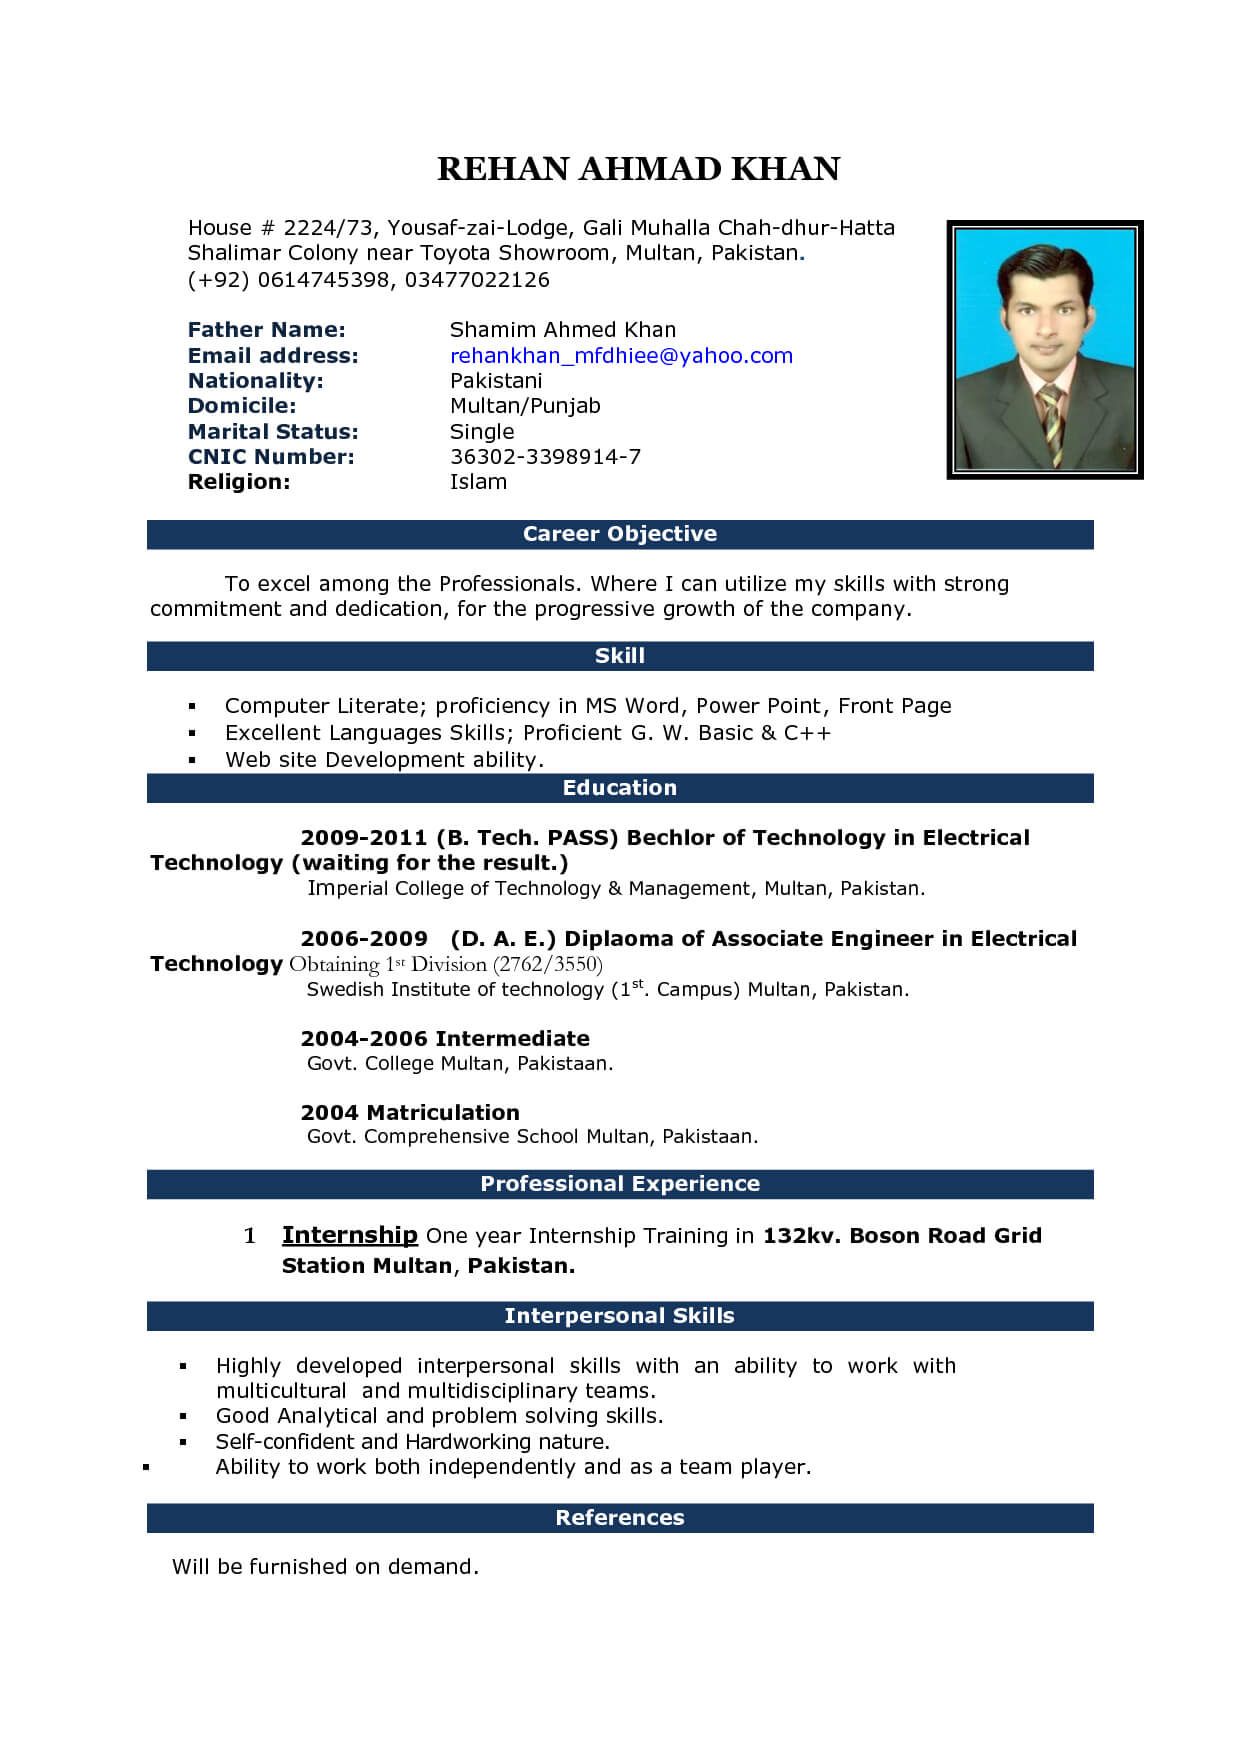 Image Result For Cv Format In Ms Word 2007 Free Download Pertaining To Resume Templates Word 2007